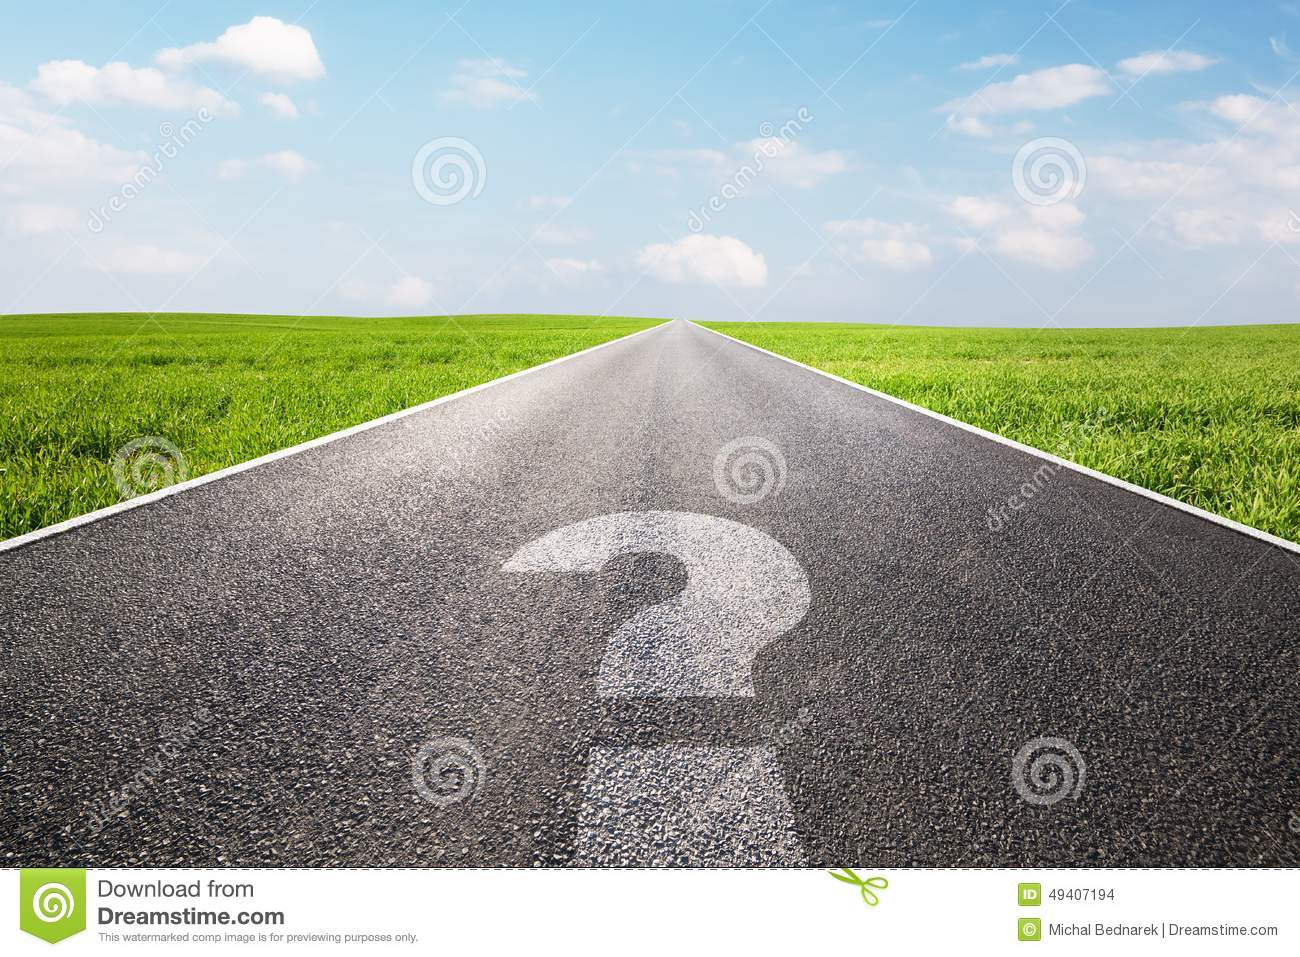 Question mark symbol on long empty straight road, highway